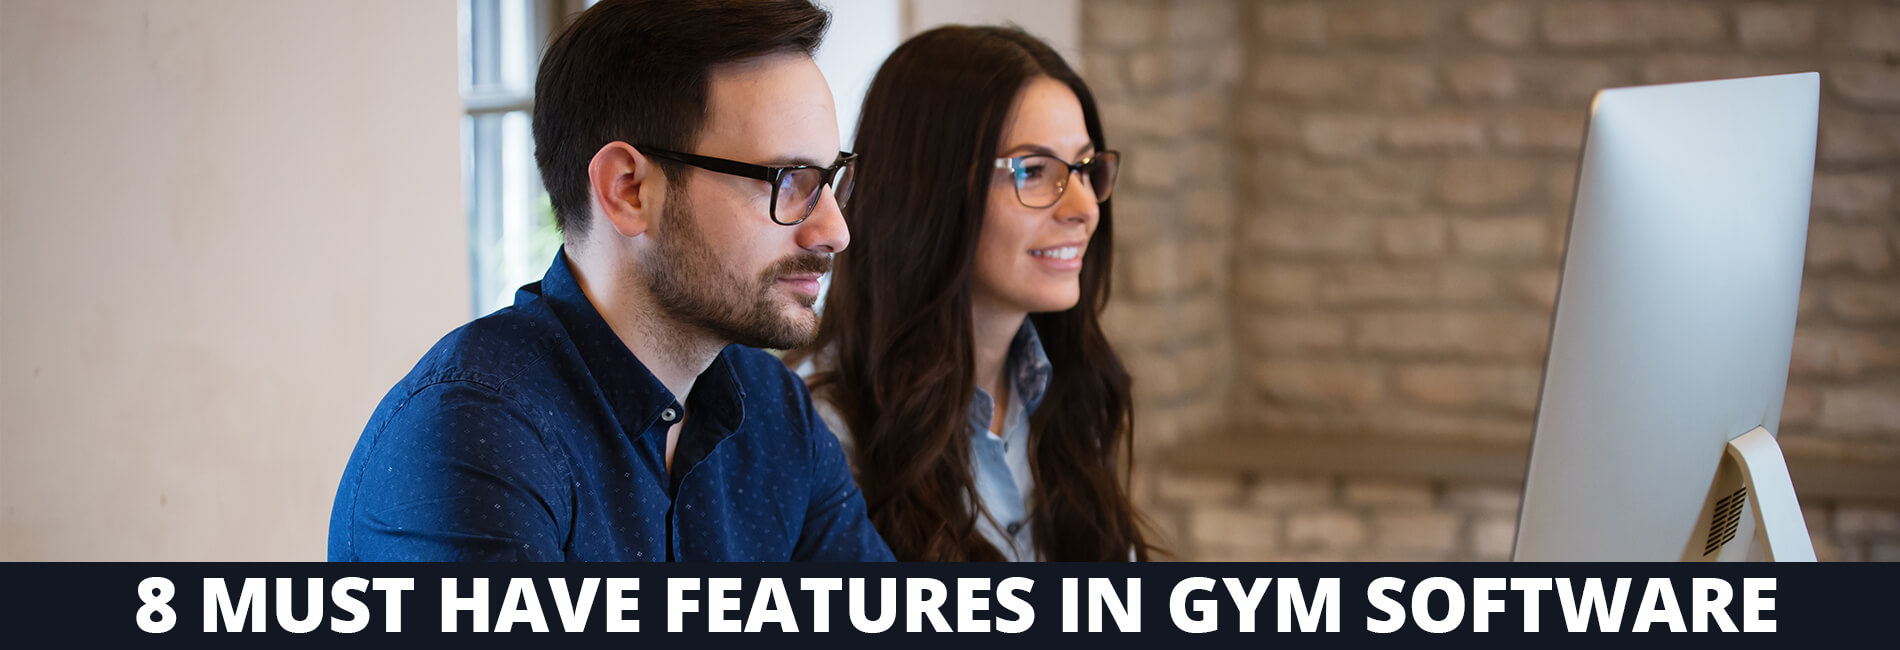 8 Must Have Features in Gym Software